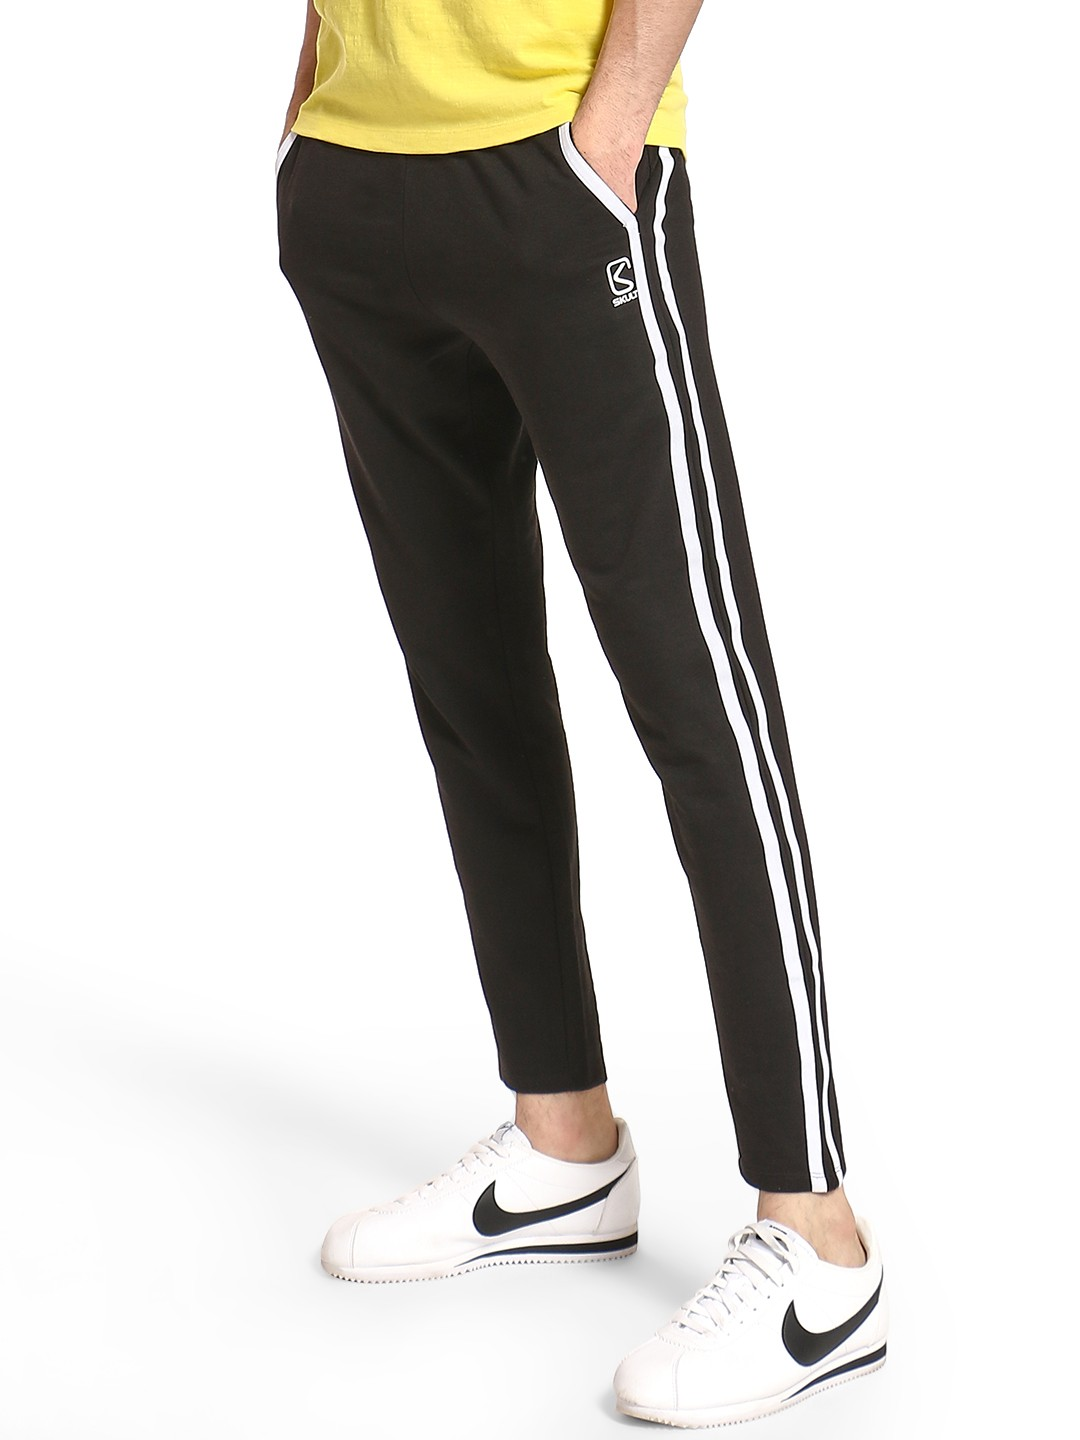 SKULT By Shahid Kapoor Black Twin Side Tape Joggers 1